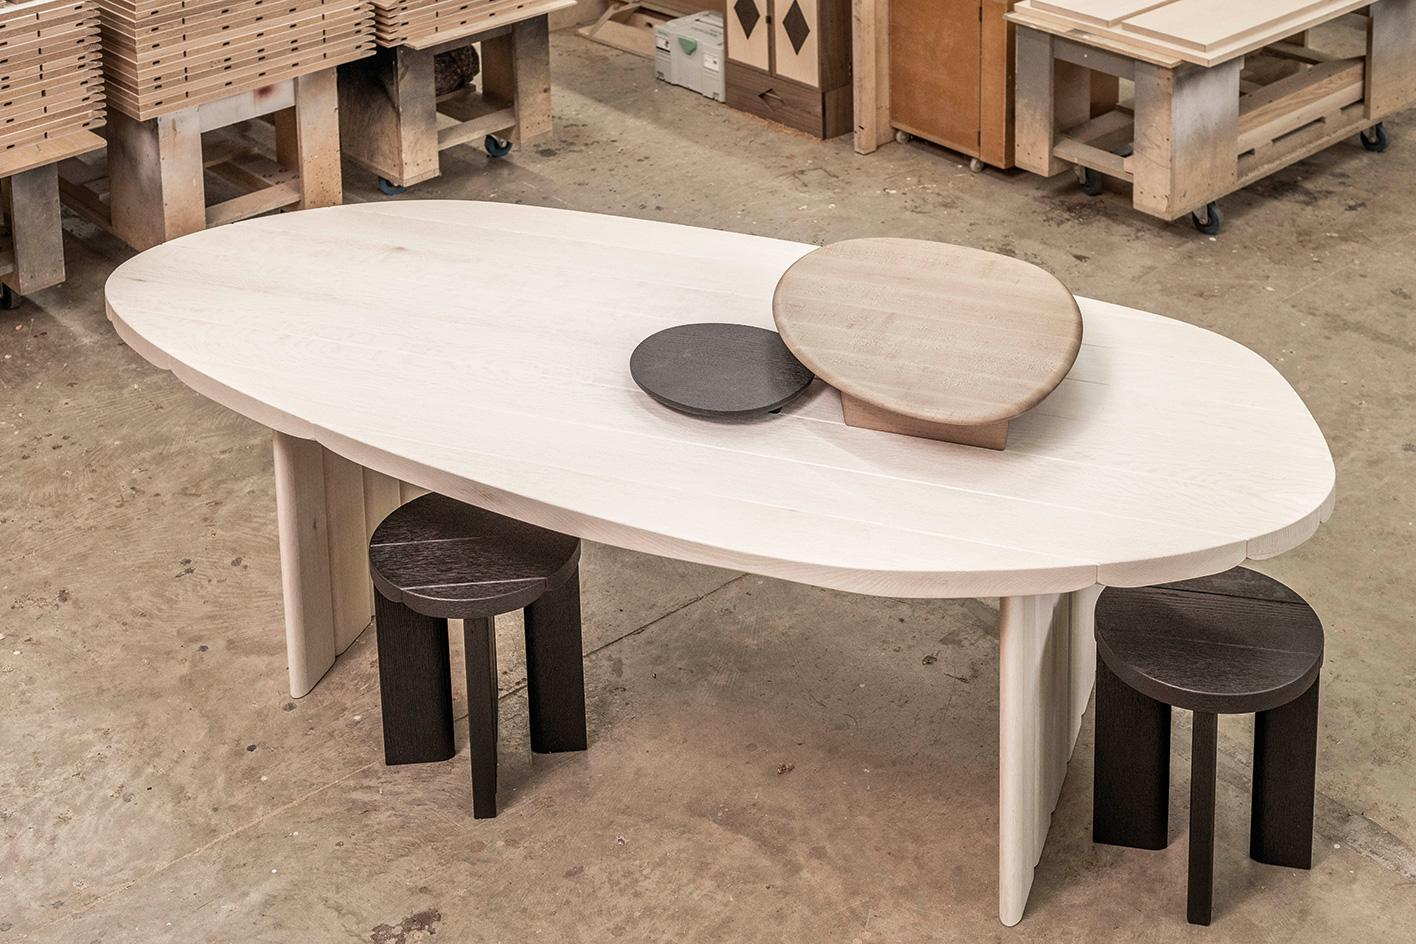 Sebastian Herkner's bleached red oak table, with tracks to allow trays, seen here in scorched red oak and ammonia-fumed maple, to slide along it